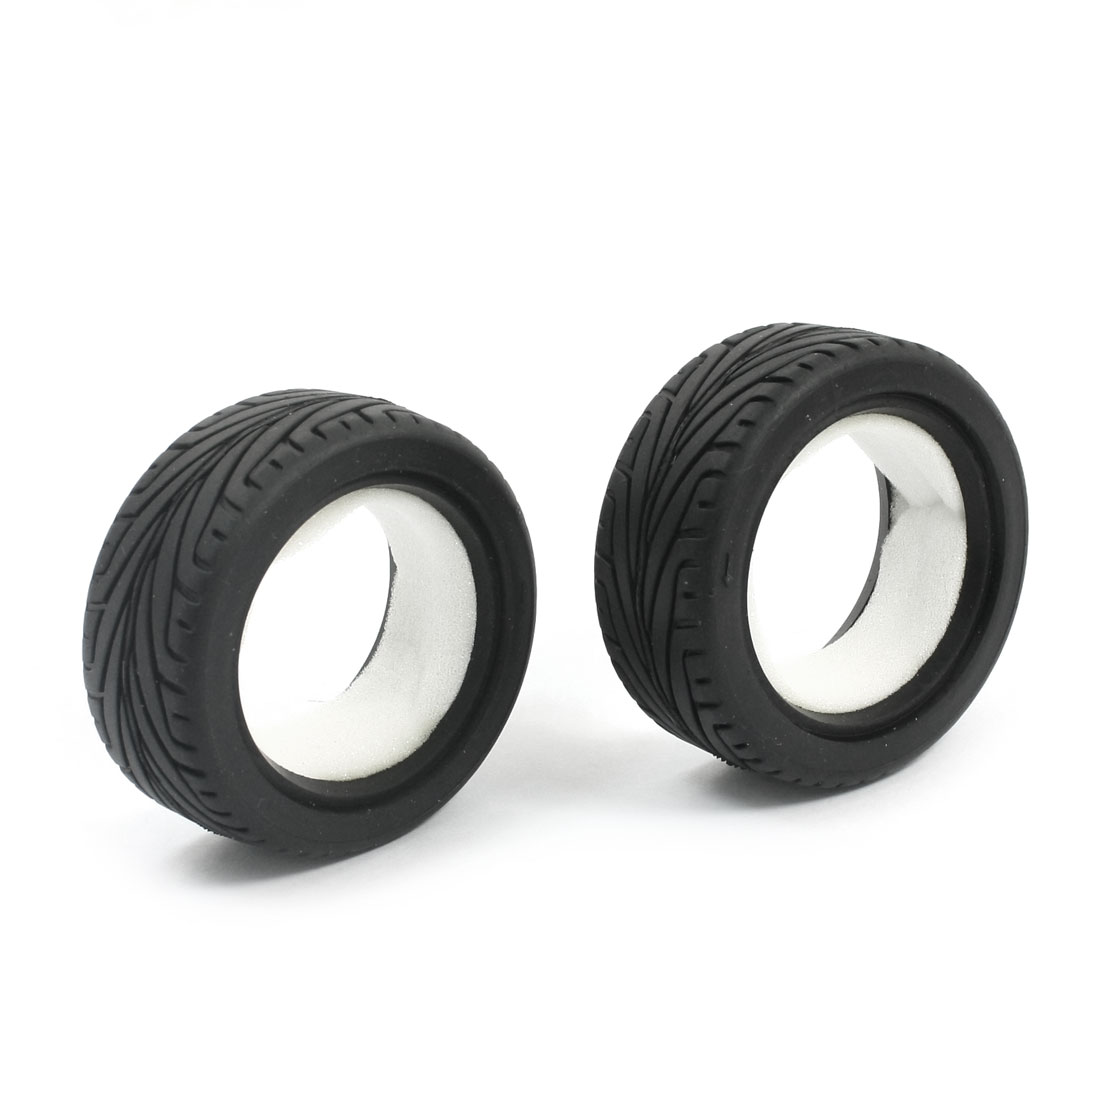 2pcs Rubber 65mm Wheel Tire for RC Model 1:10 Flat Racing Car Vehicle